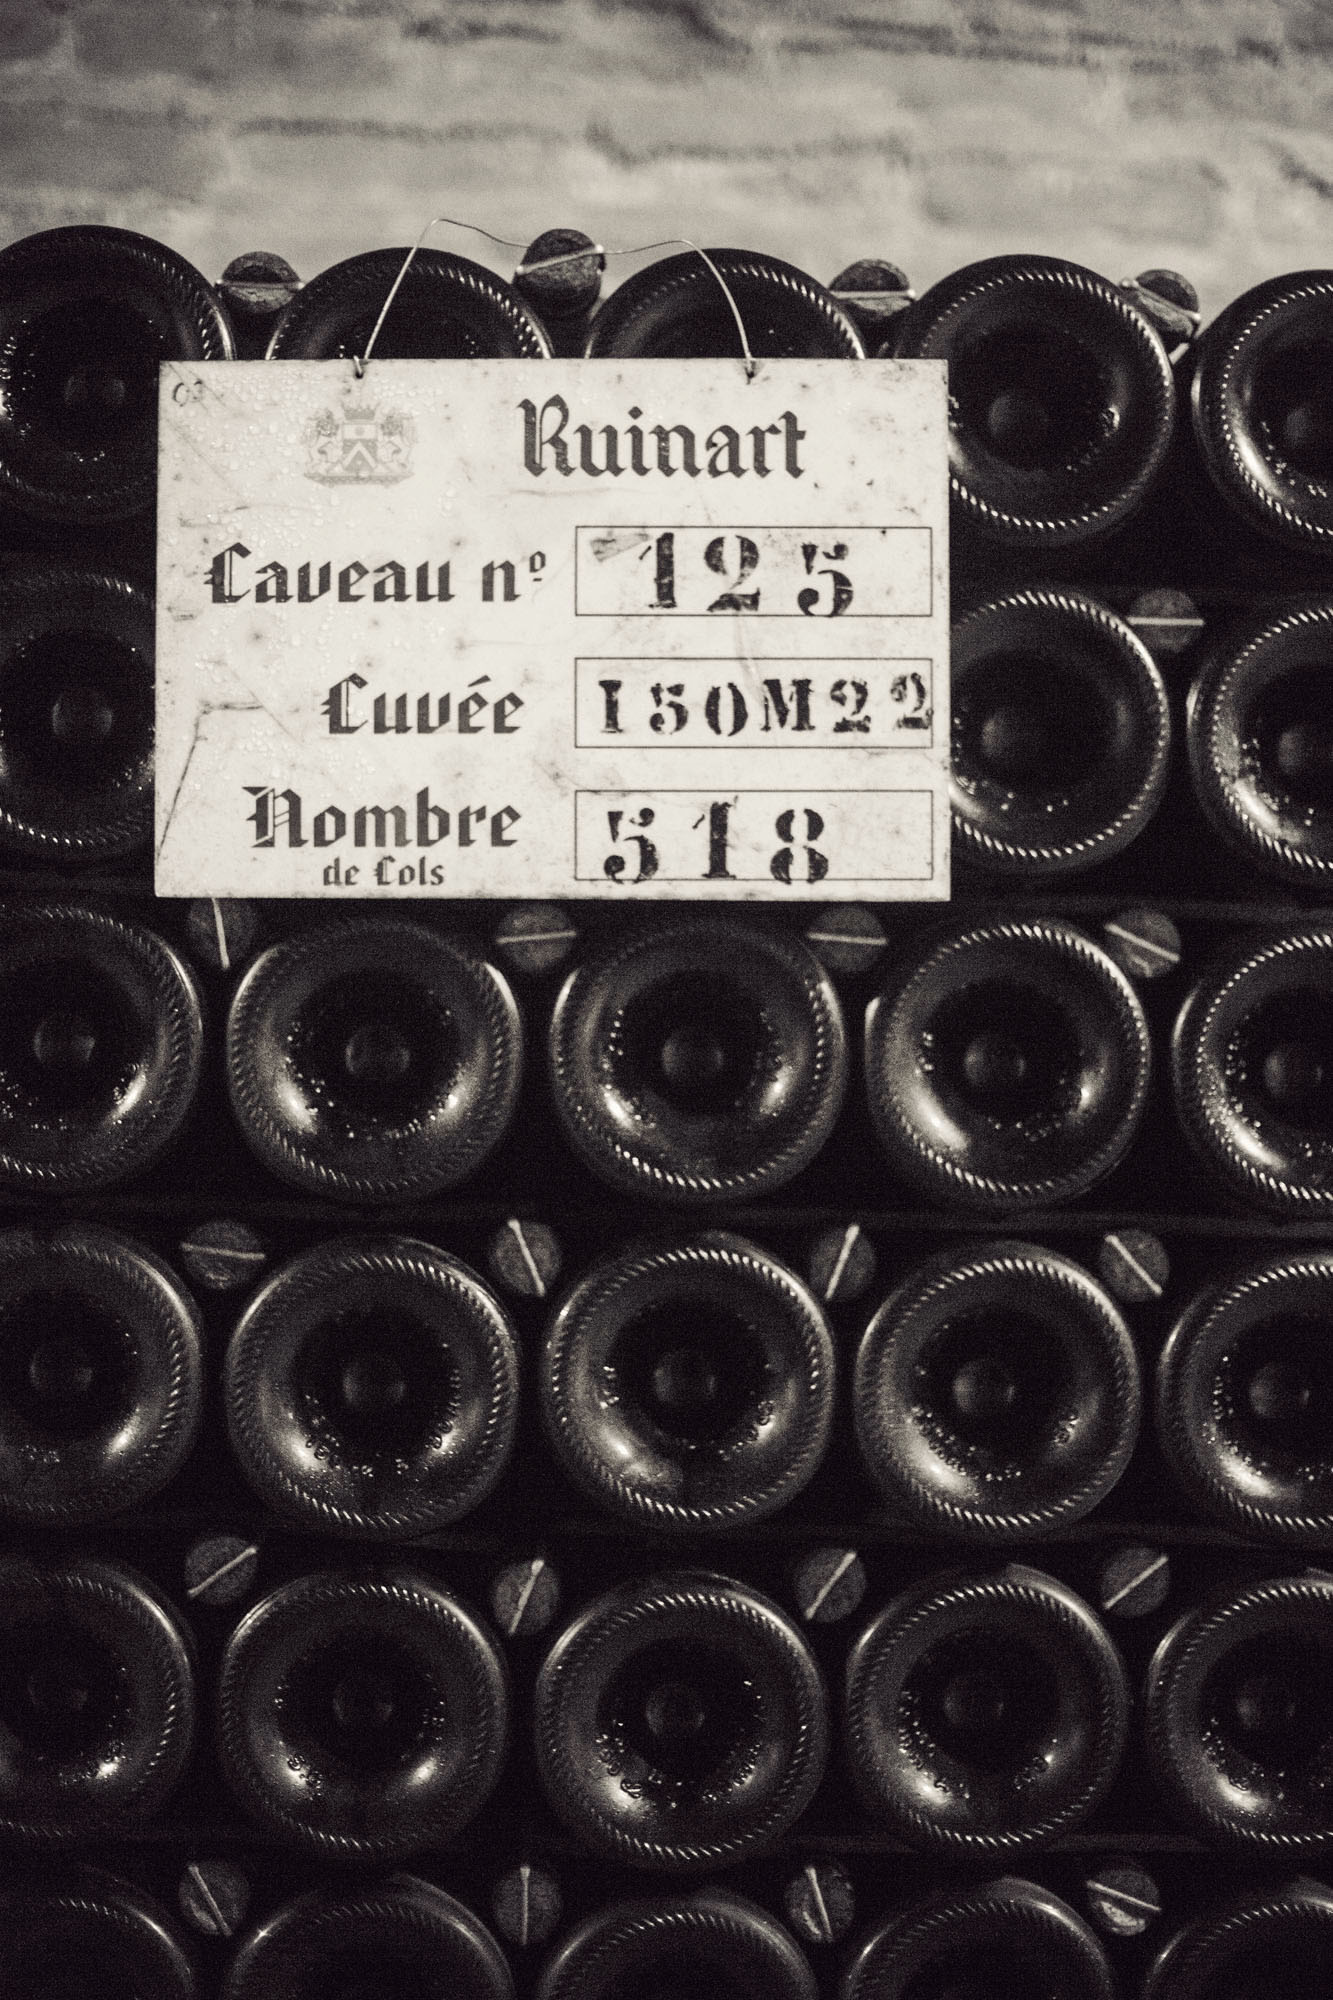 ruinart_champagne_harvest_027